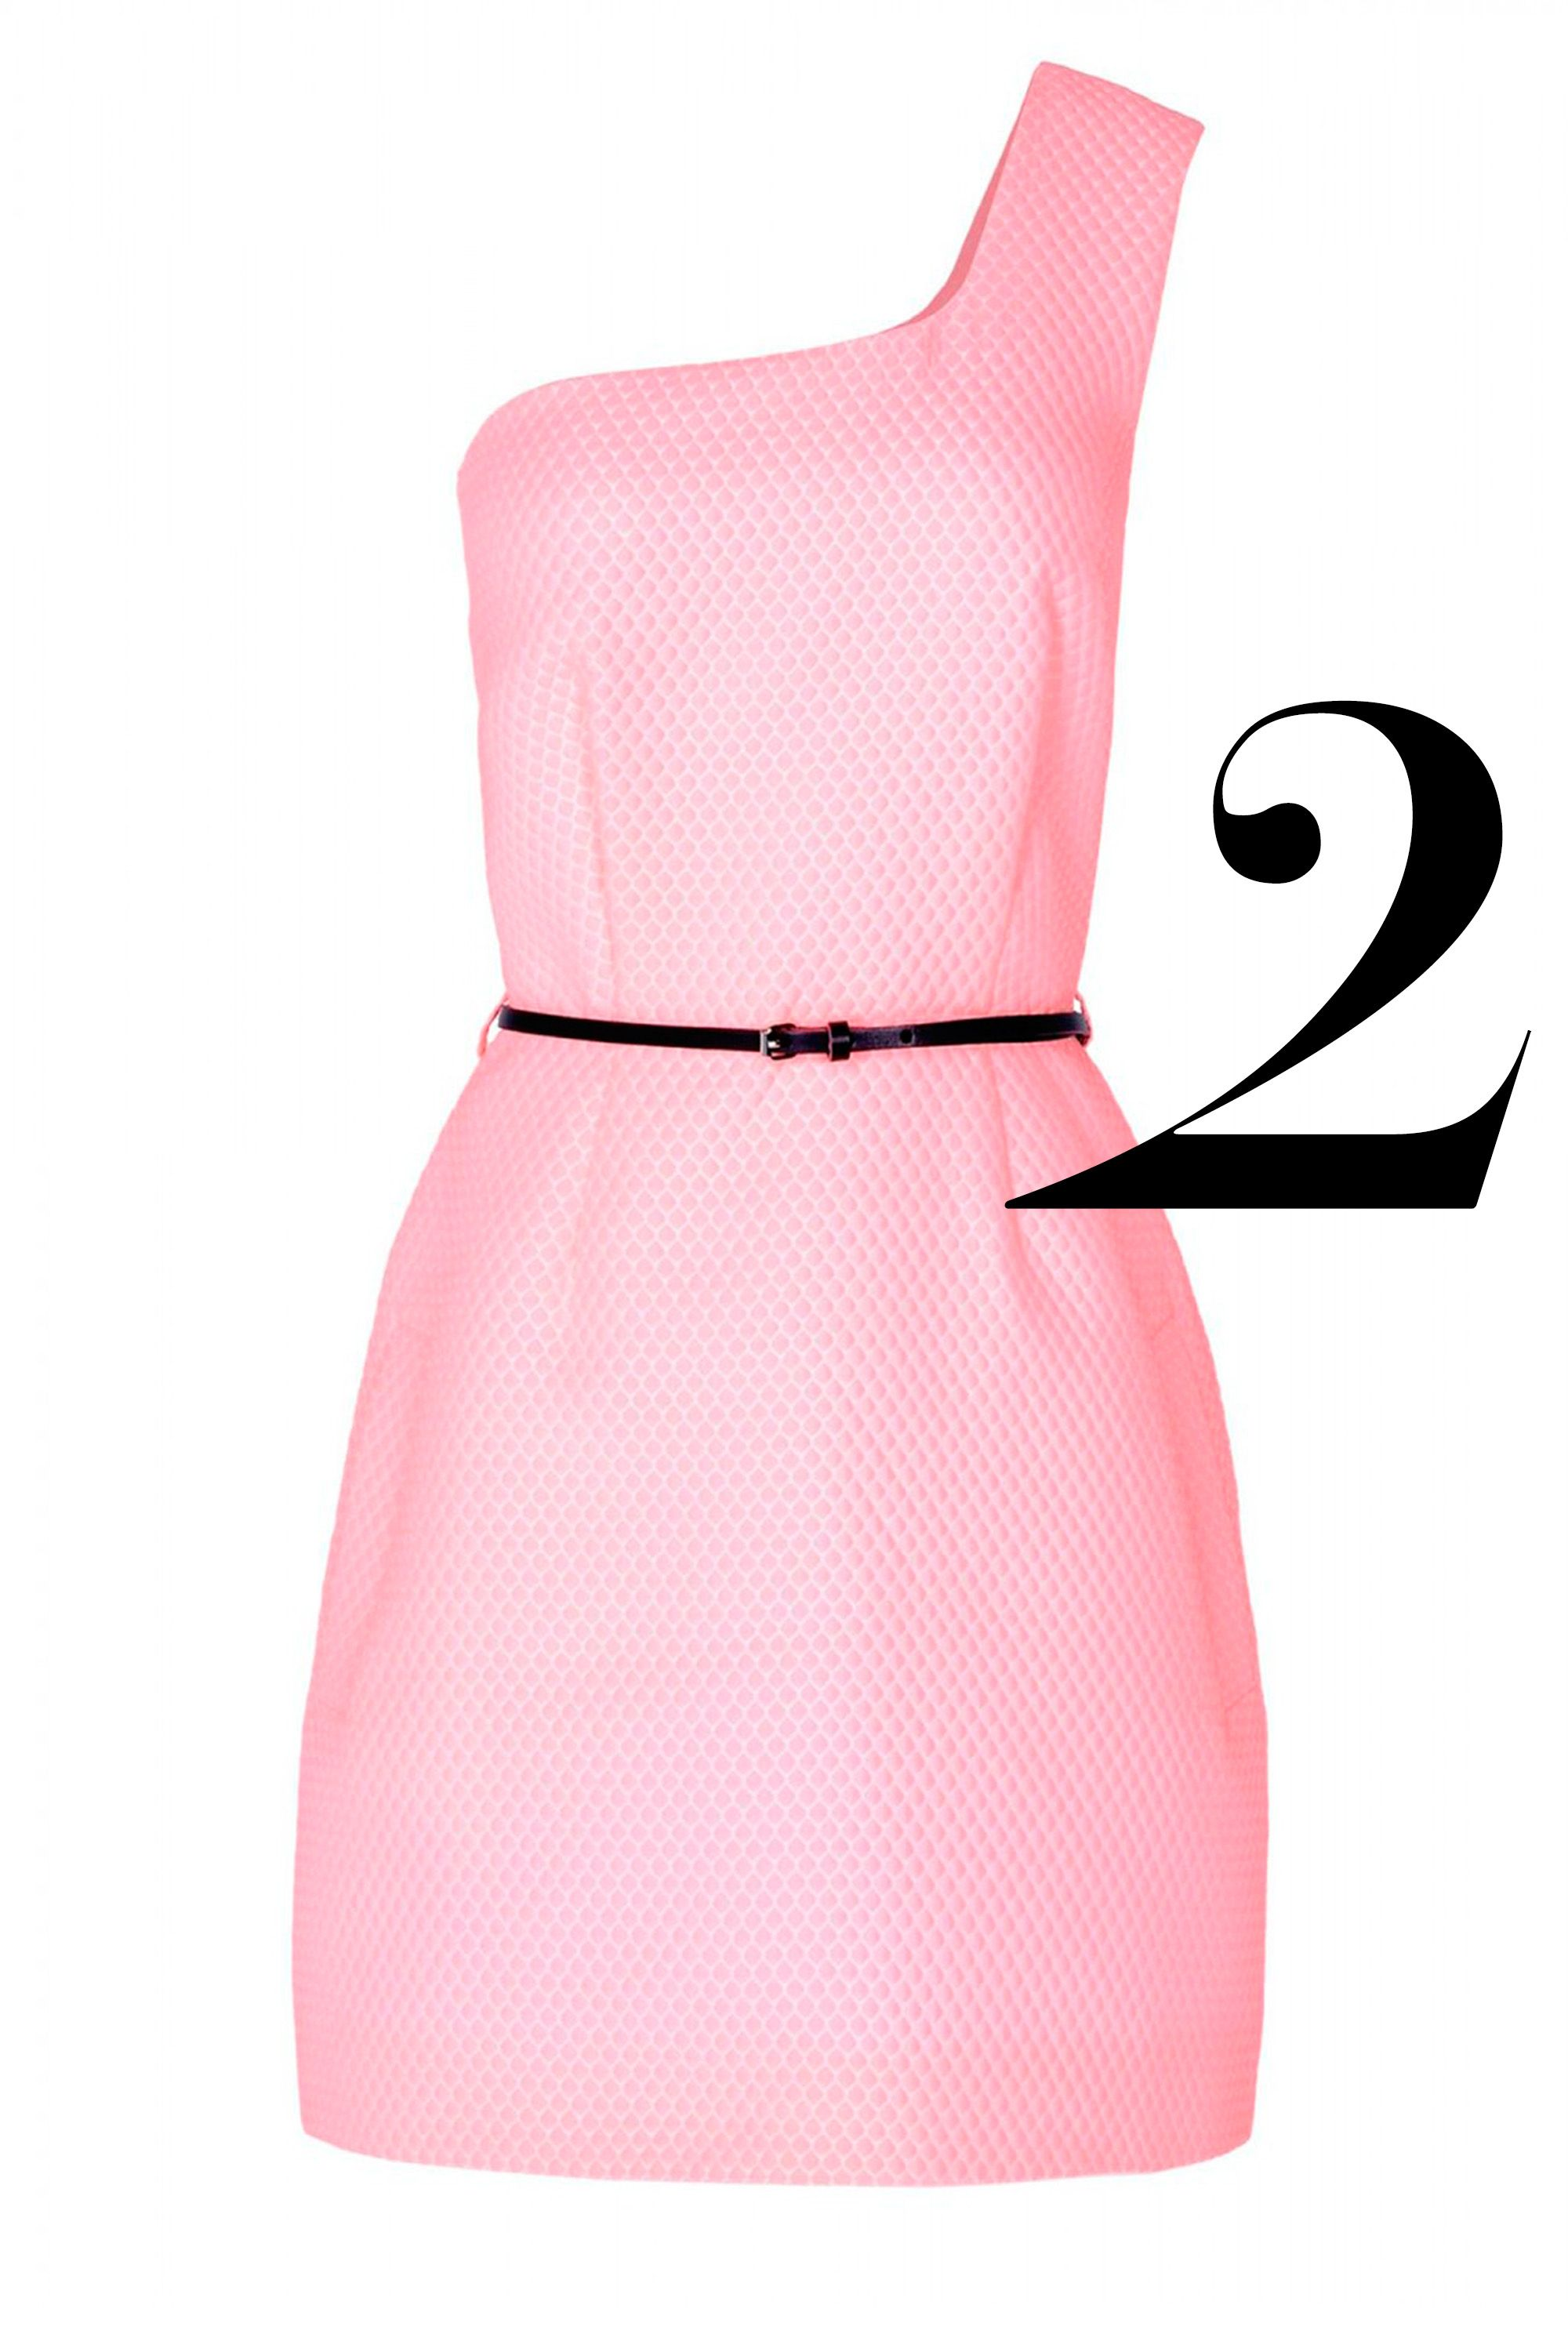 "<p><em>Victoria, Victoria Beckham dress, $860, <a href=""http://shop.harpersbazaar.com/clothing/dresses/pink-jacquard-one-shoulder-dress/"" target=""_blank"">shopBAZAAR.com</a>. </em></p>"